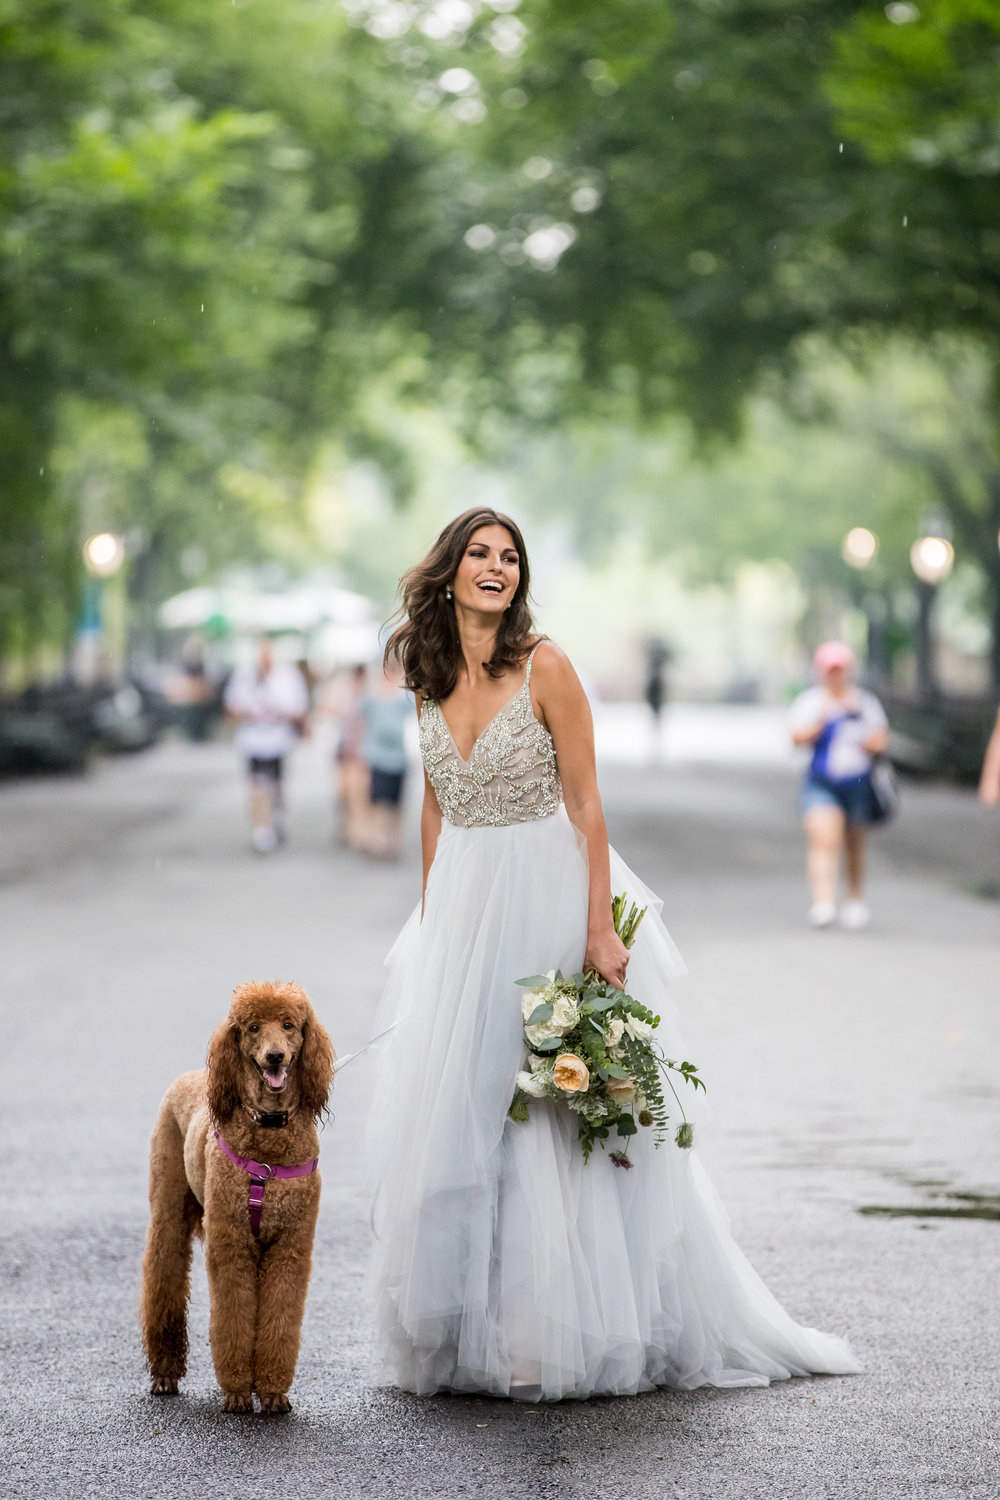 park wedding bride and dog photography 0026